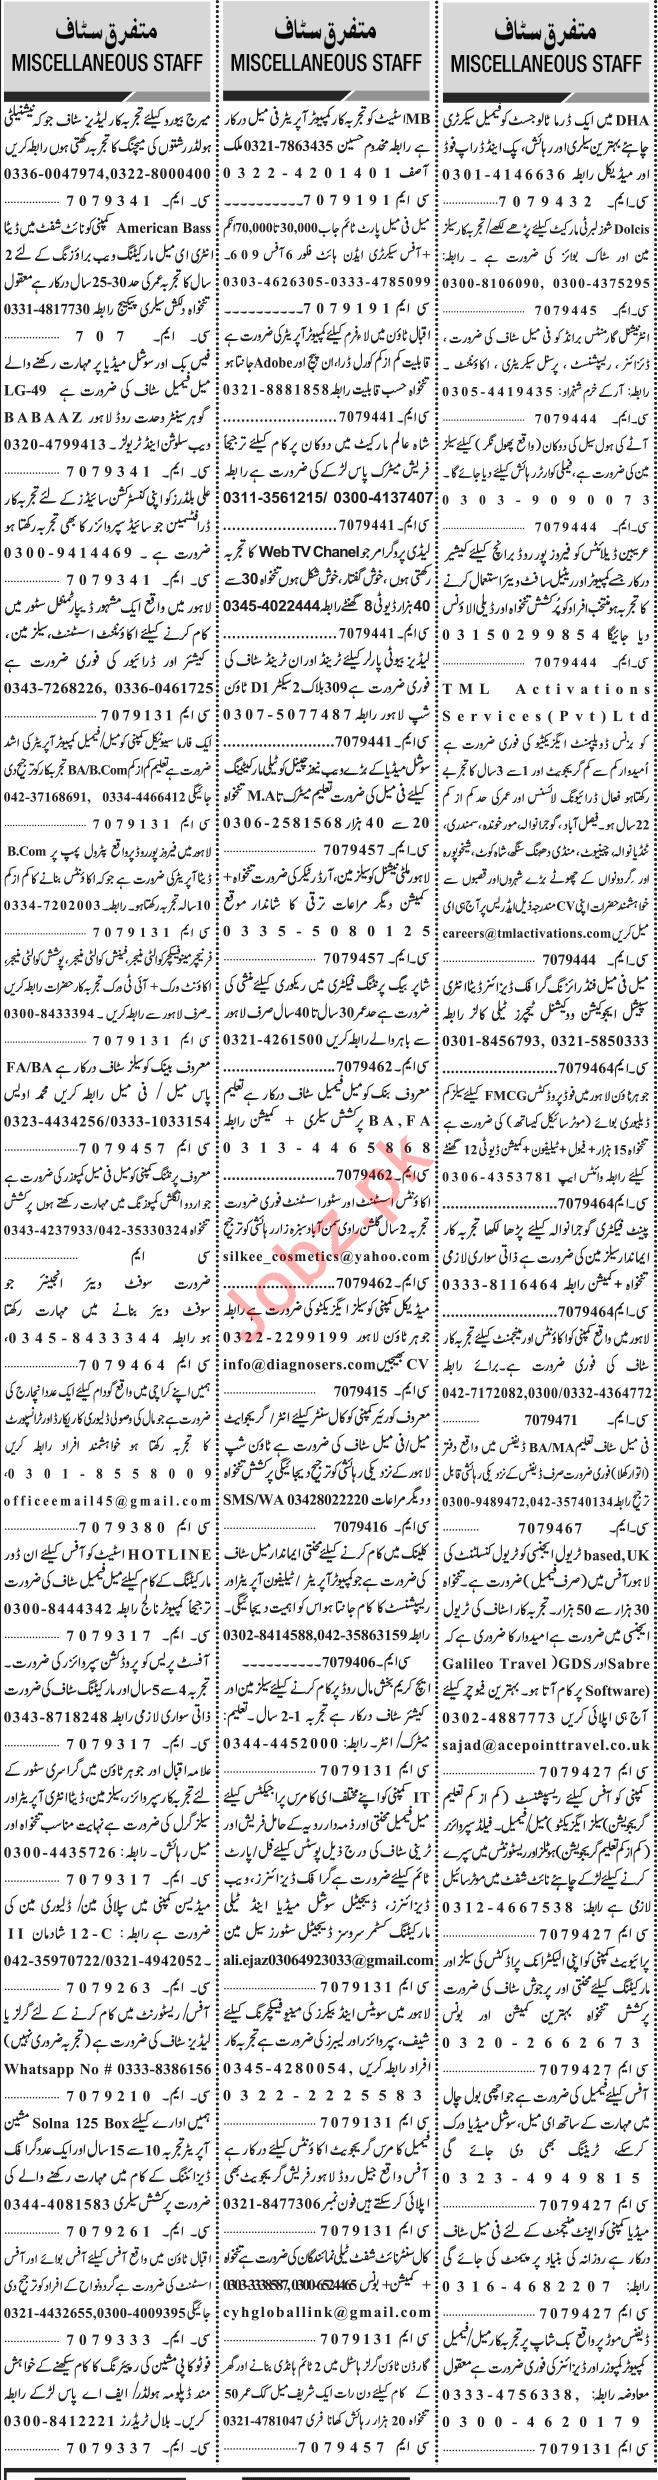 Jang Sunday Classified Ads 9 Feb 2020 for Business Staff